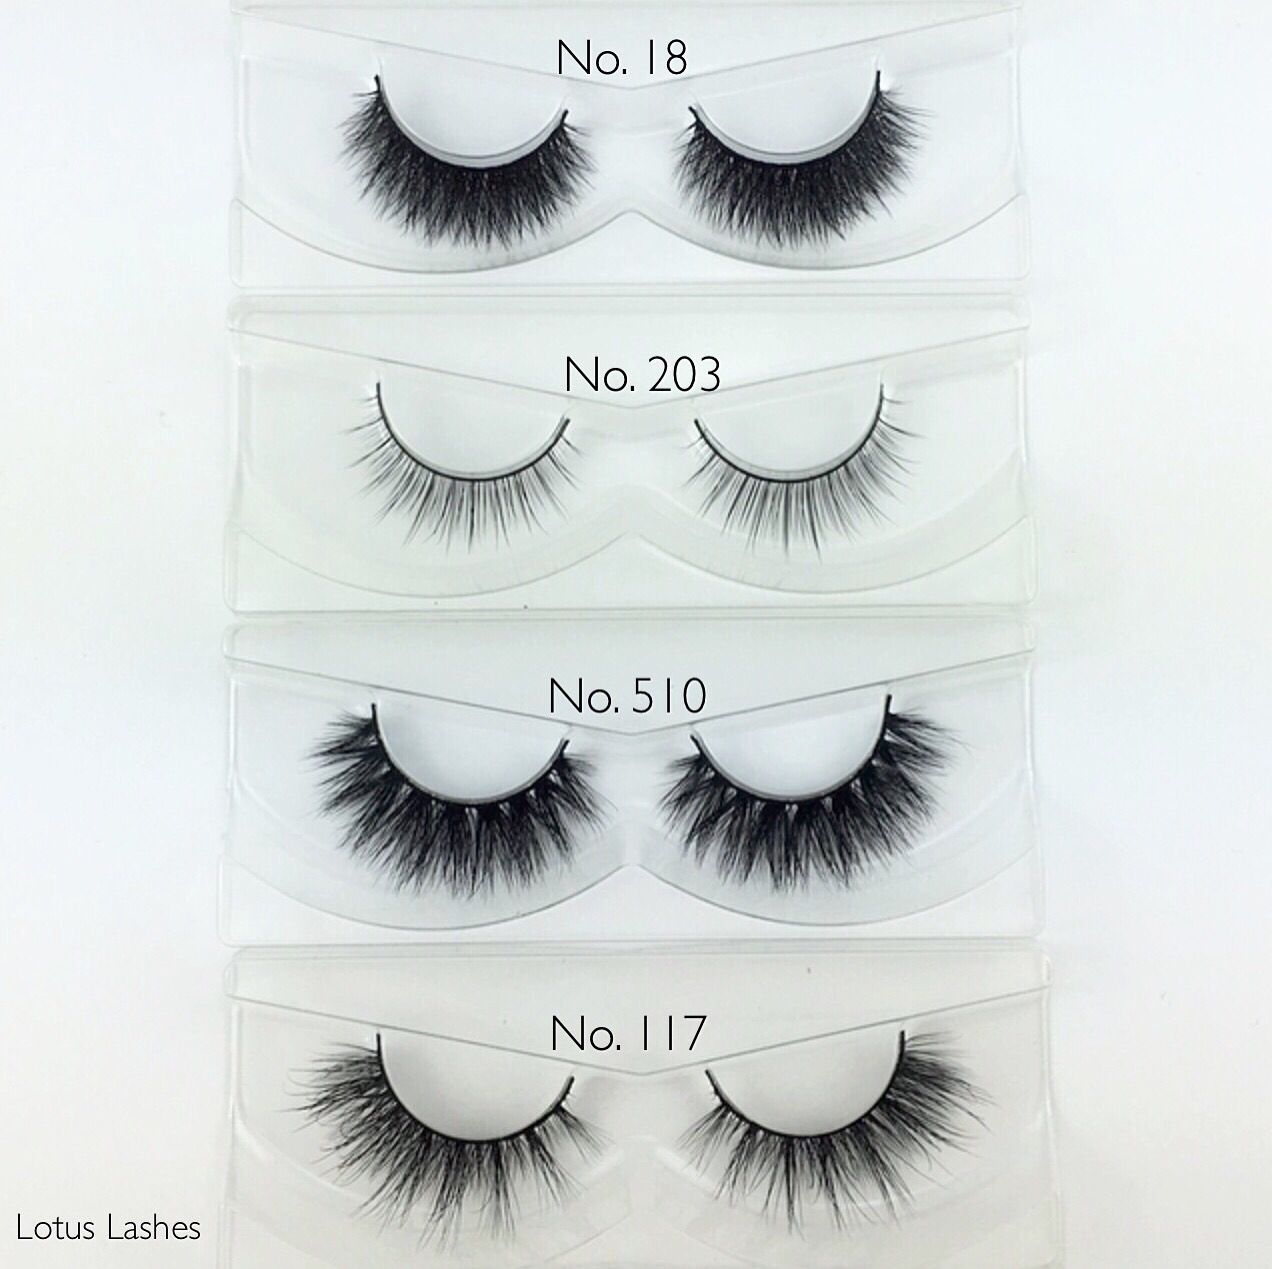 47394aad9a4 Gorgeous Lotus Mink Lashes | // Our Beautiful Lashes // in 2019 ...